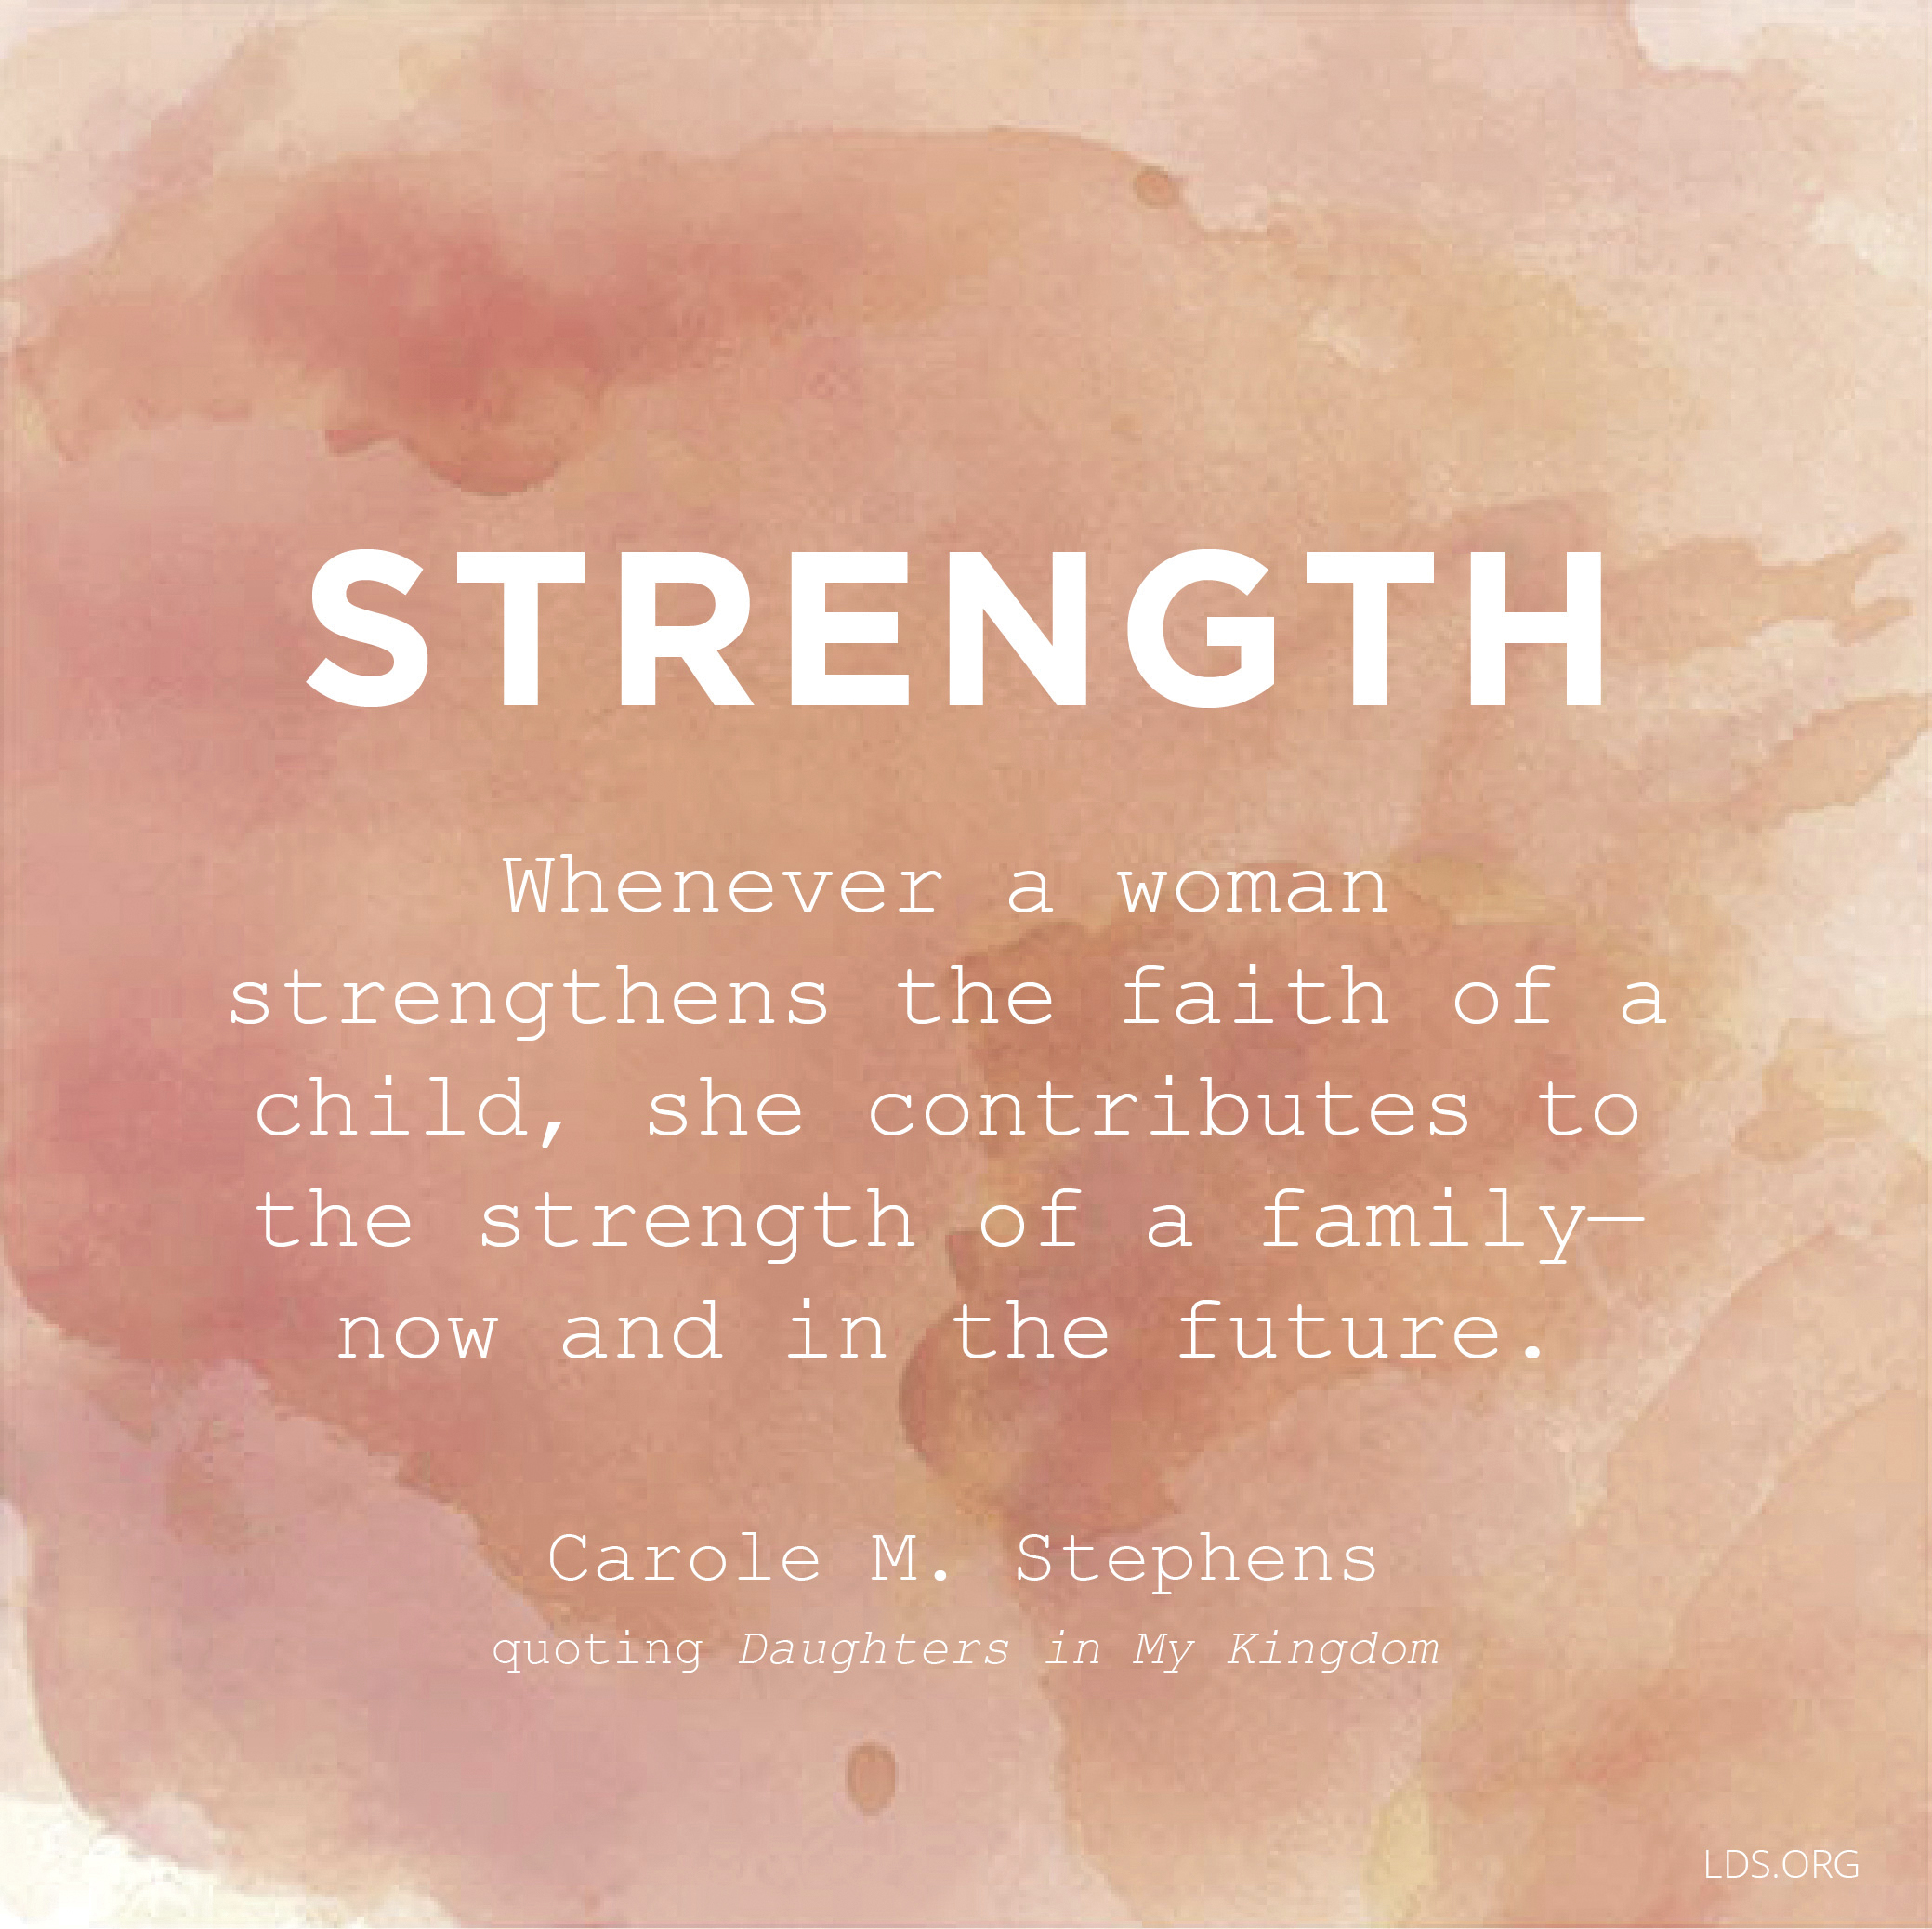 """""""Whenever a woman strengthens the faith of a child, she contributes to the strength of a family—now and in the future.""""—Sister Carole M. Stephens, quoting Daughters in My Kingdom In """"The Family Is of God"""""""